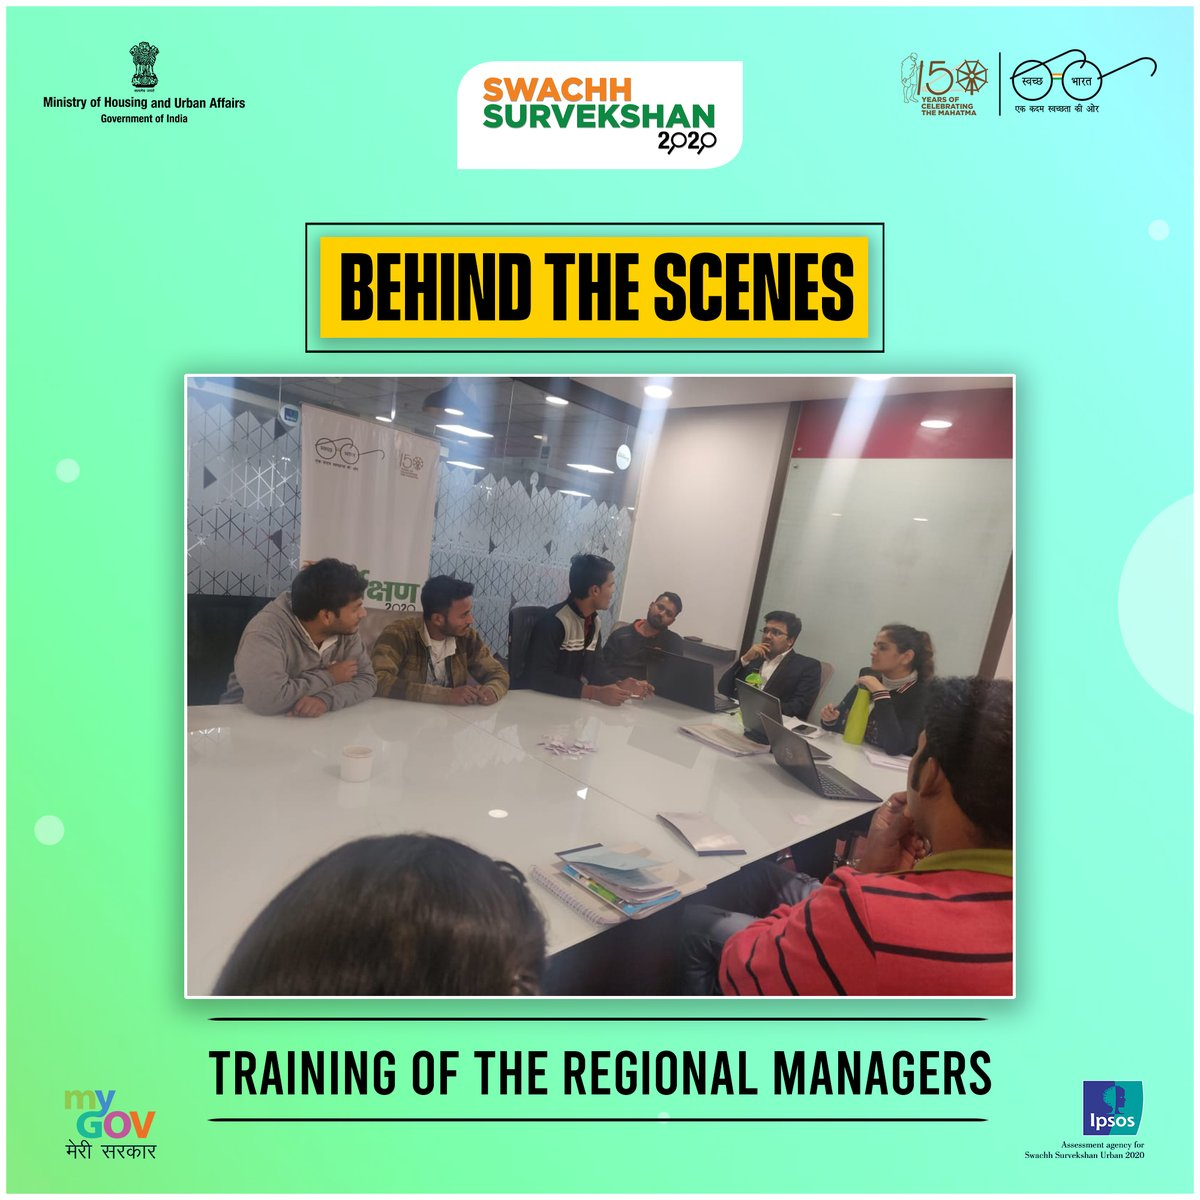 Take a peak #BehindTheScenes of #SwachhSurvekshan2020.  Before they could train, we ensured that they were trained!  #SwachhBharat #BTS https://t.co/UsiB42aUqn